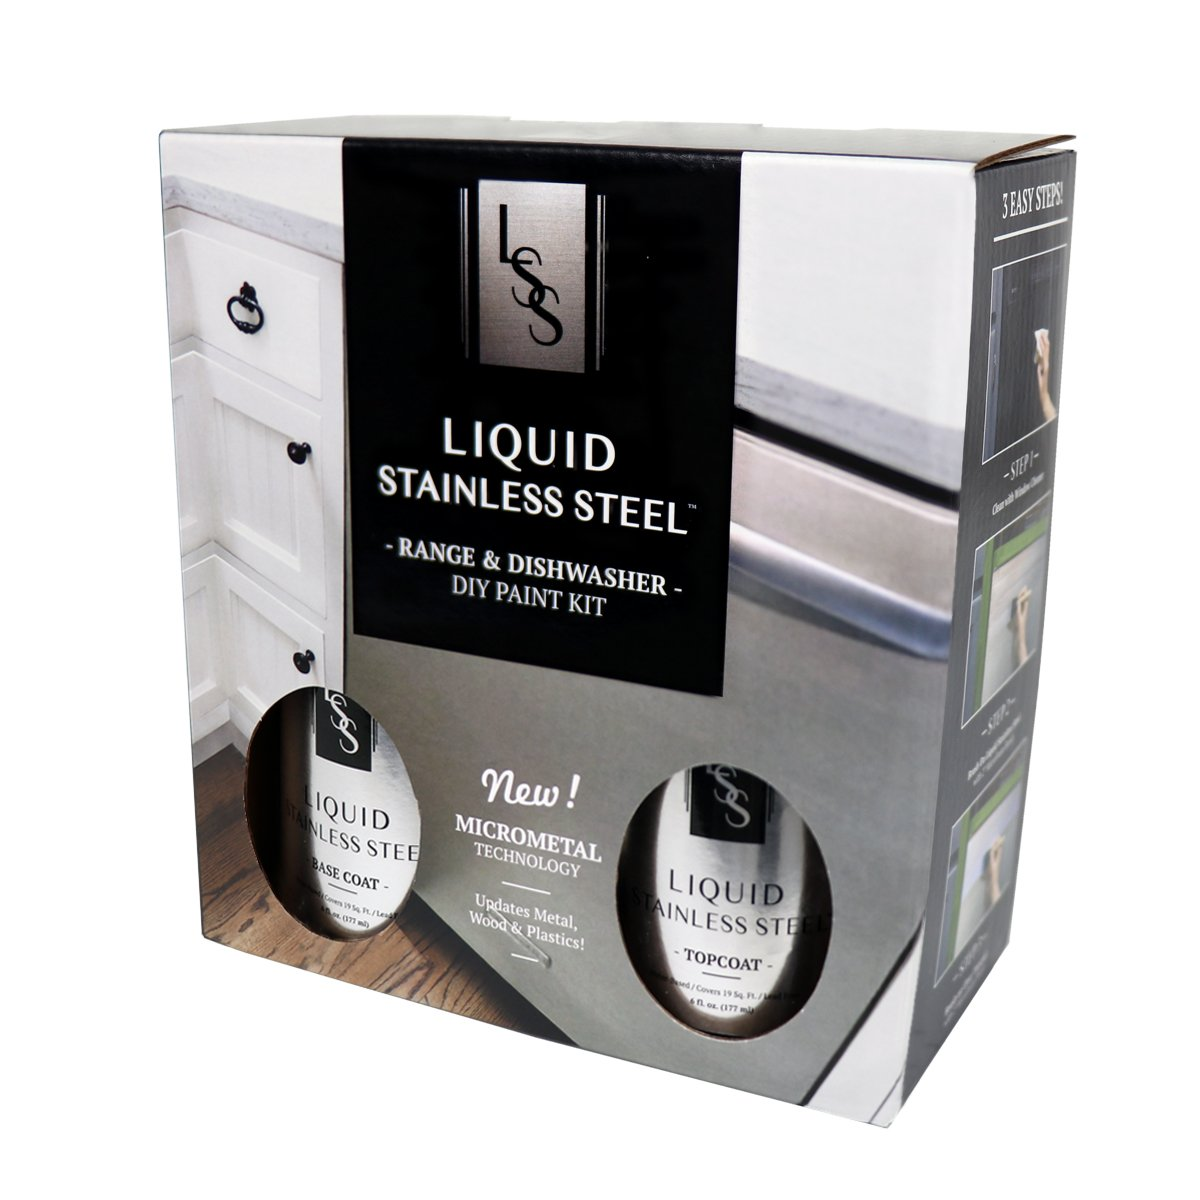 Liquid Stainless Steel Range and Dishwasher Kit